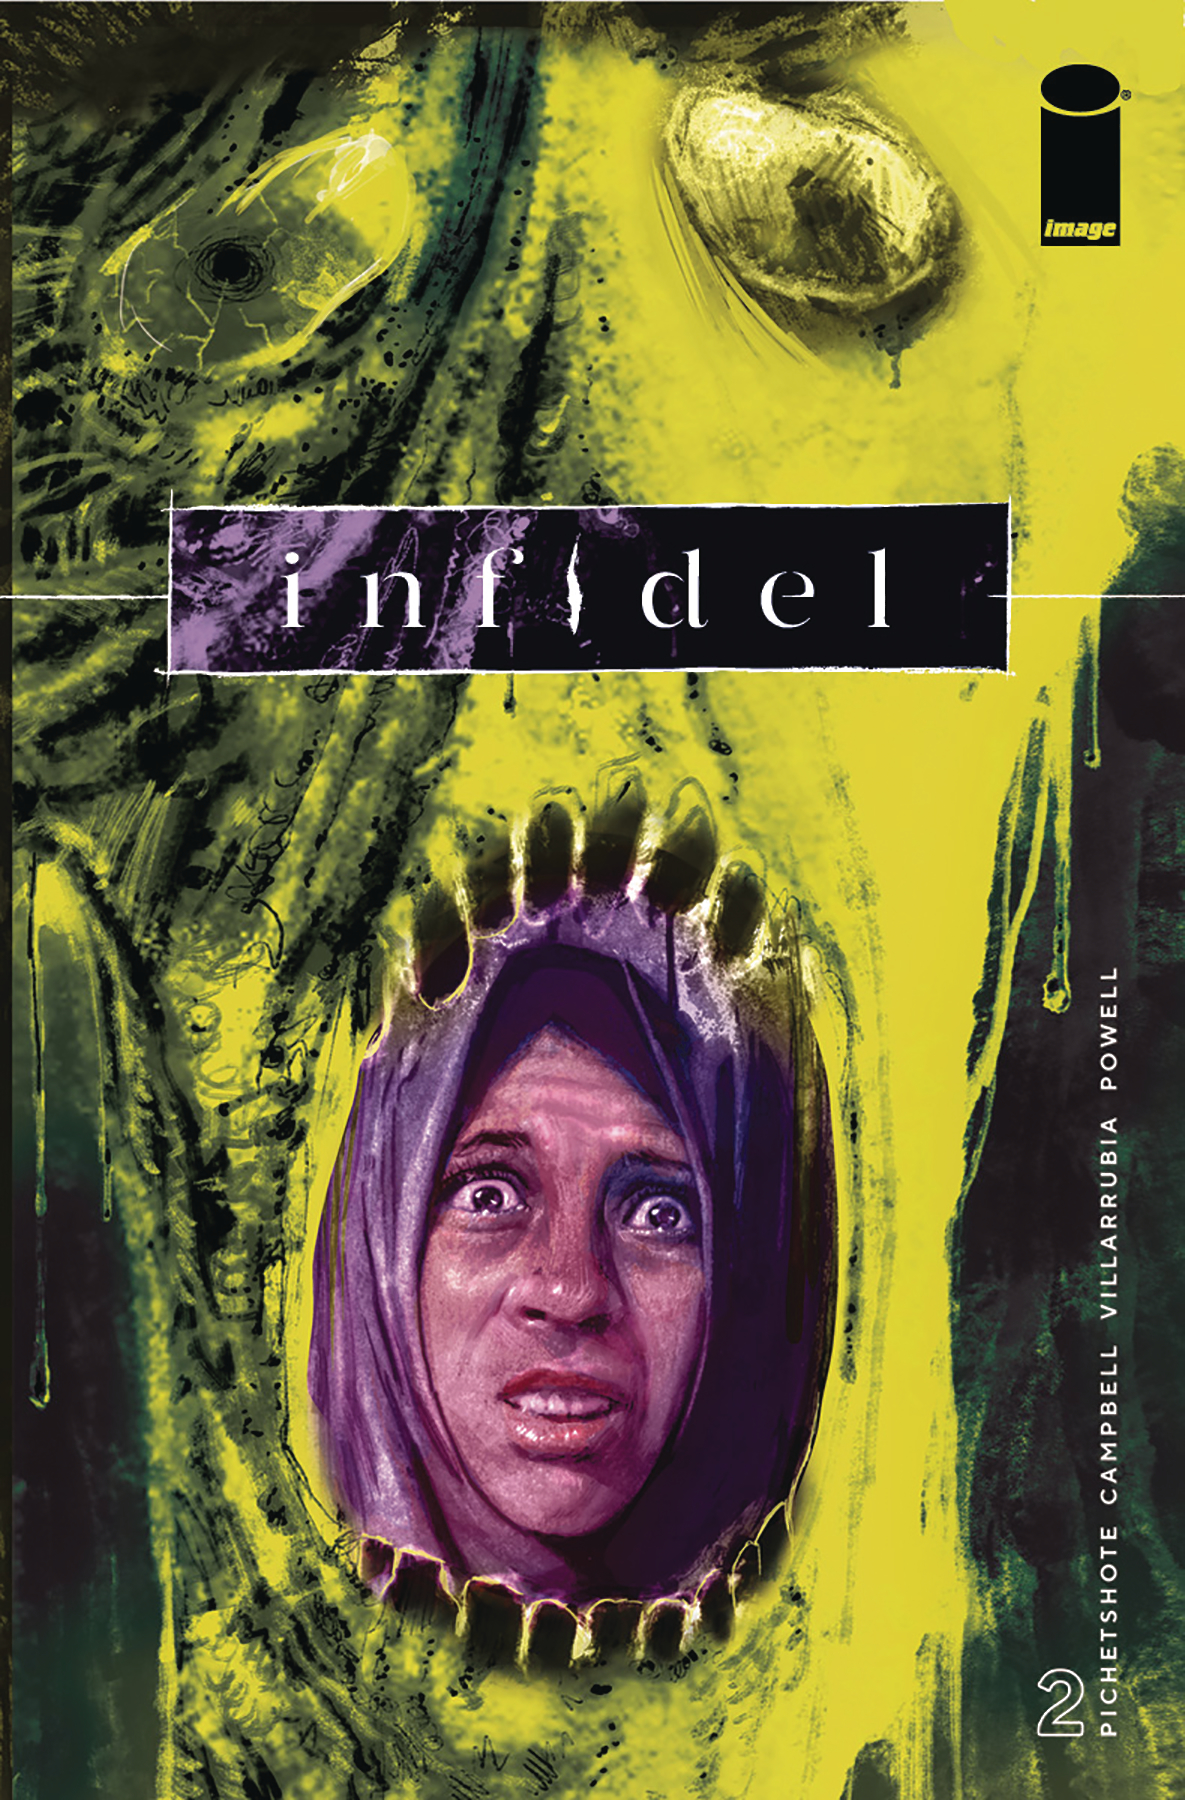 INFIDEL #2 (OF 5) CVR A CAMPBELL & VILLARRUBIA (MR)